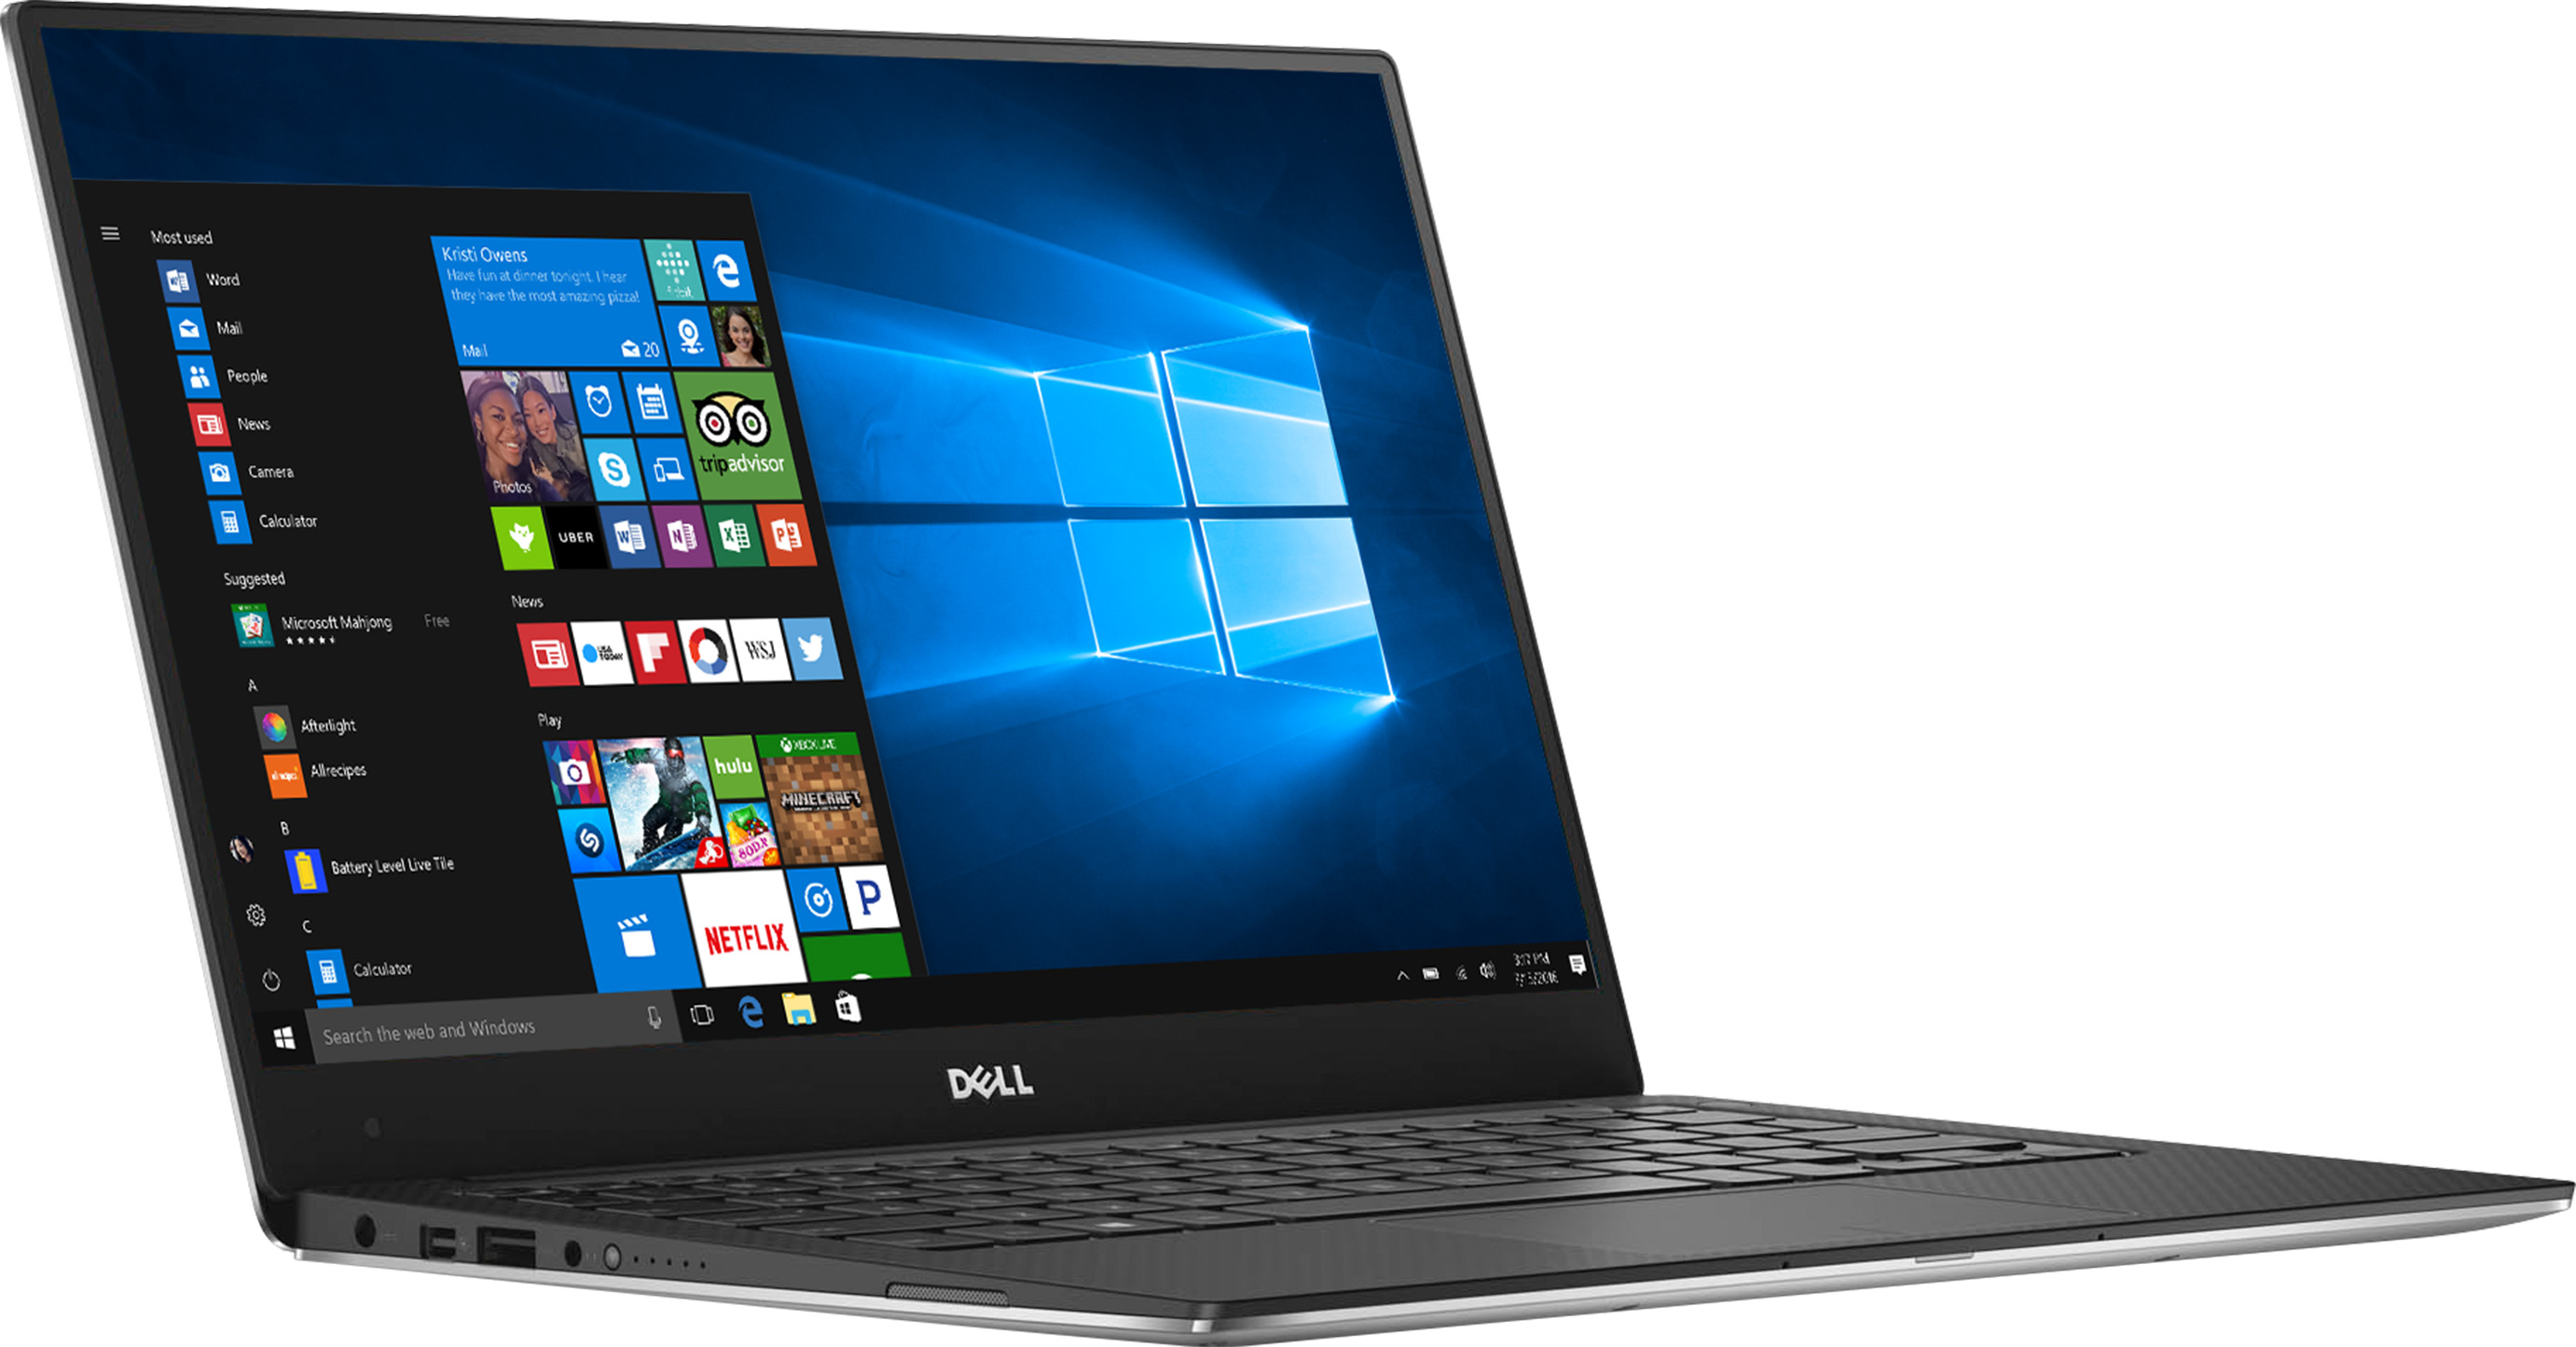 For , Dell has issued a substantial reworking of the XPS 13, with a new design that cuts down on overall size, adds new CPU options, and improves cooling and efficiency with more heat pipes.